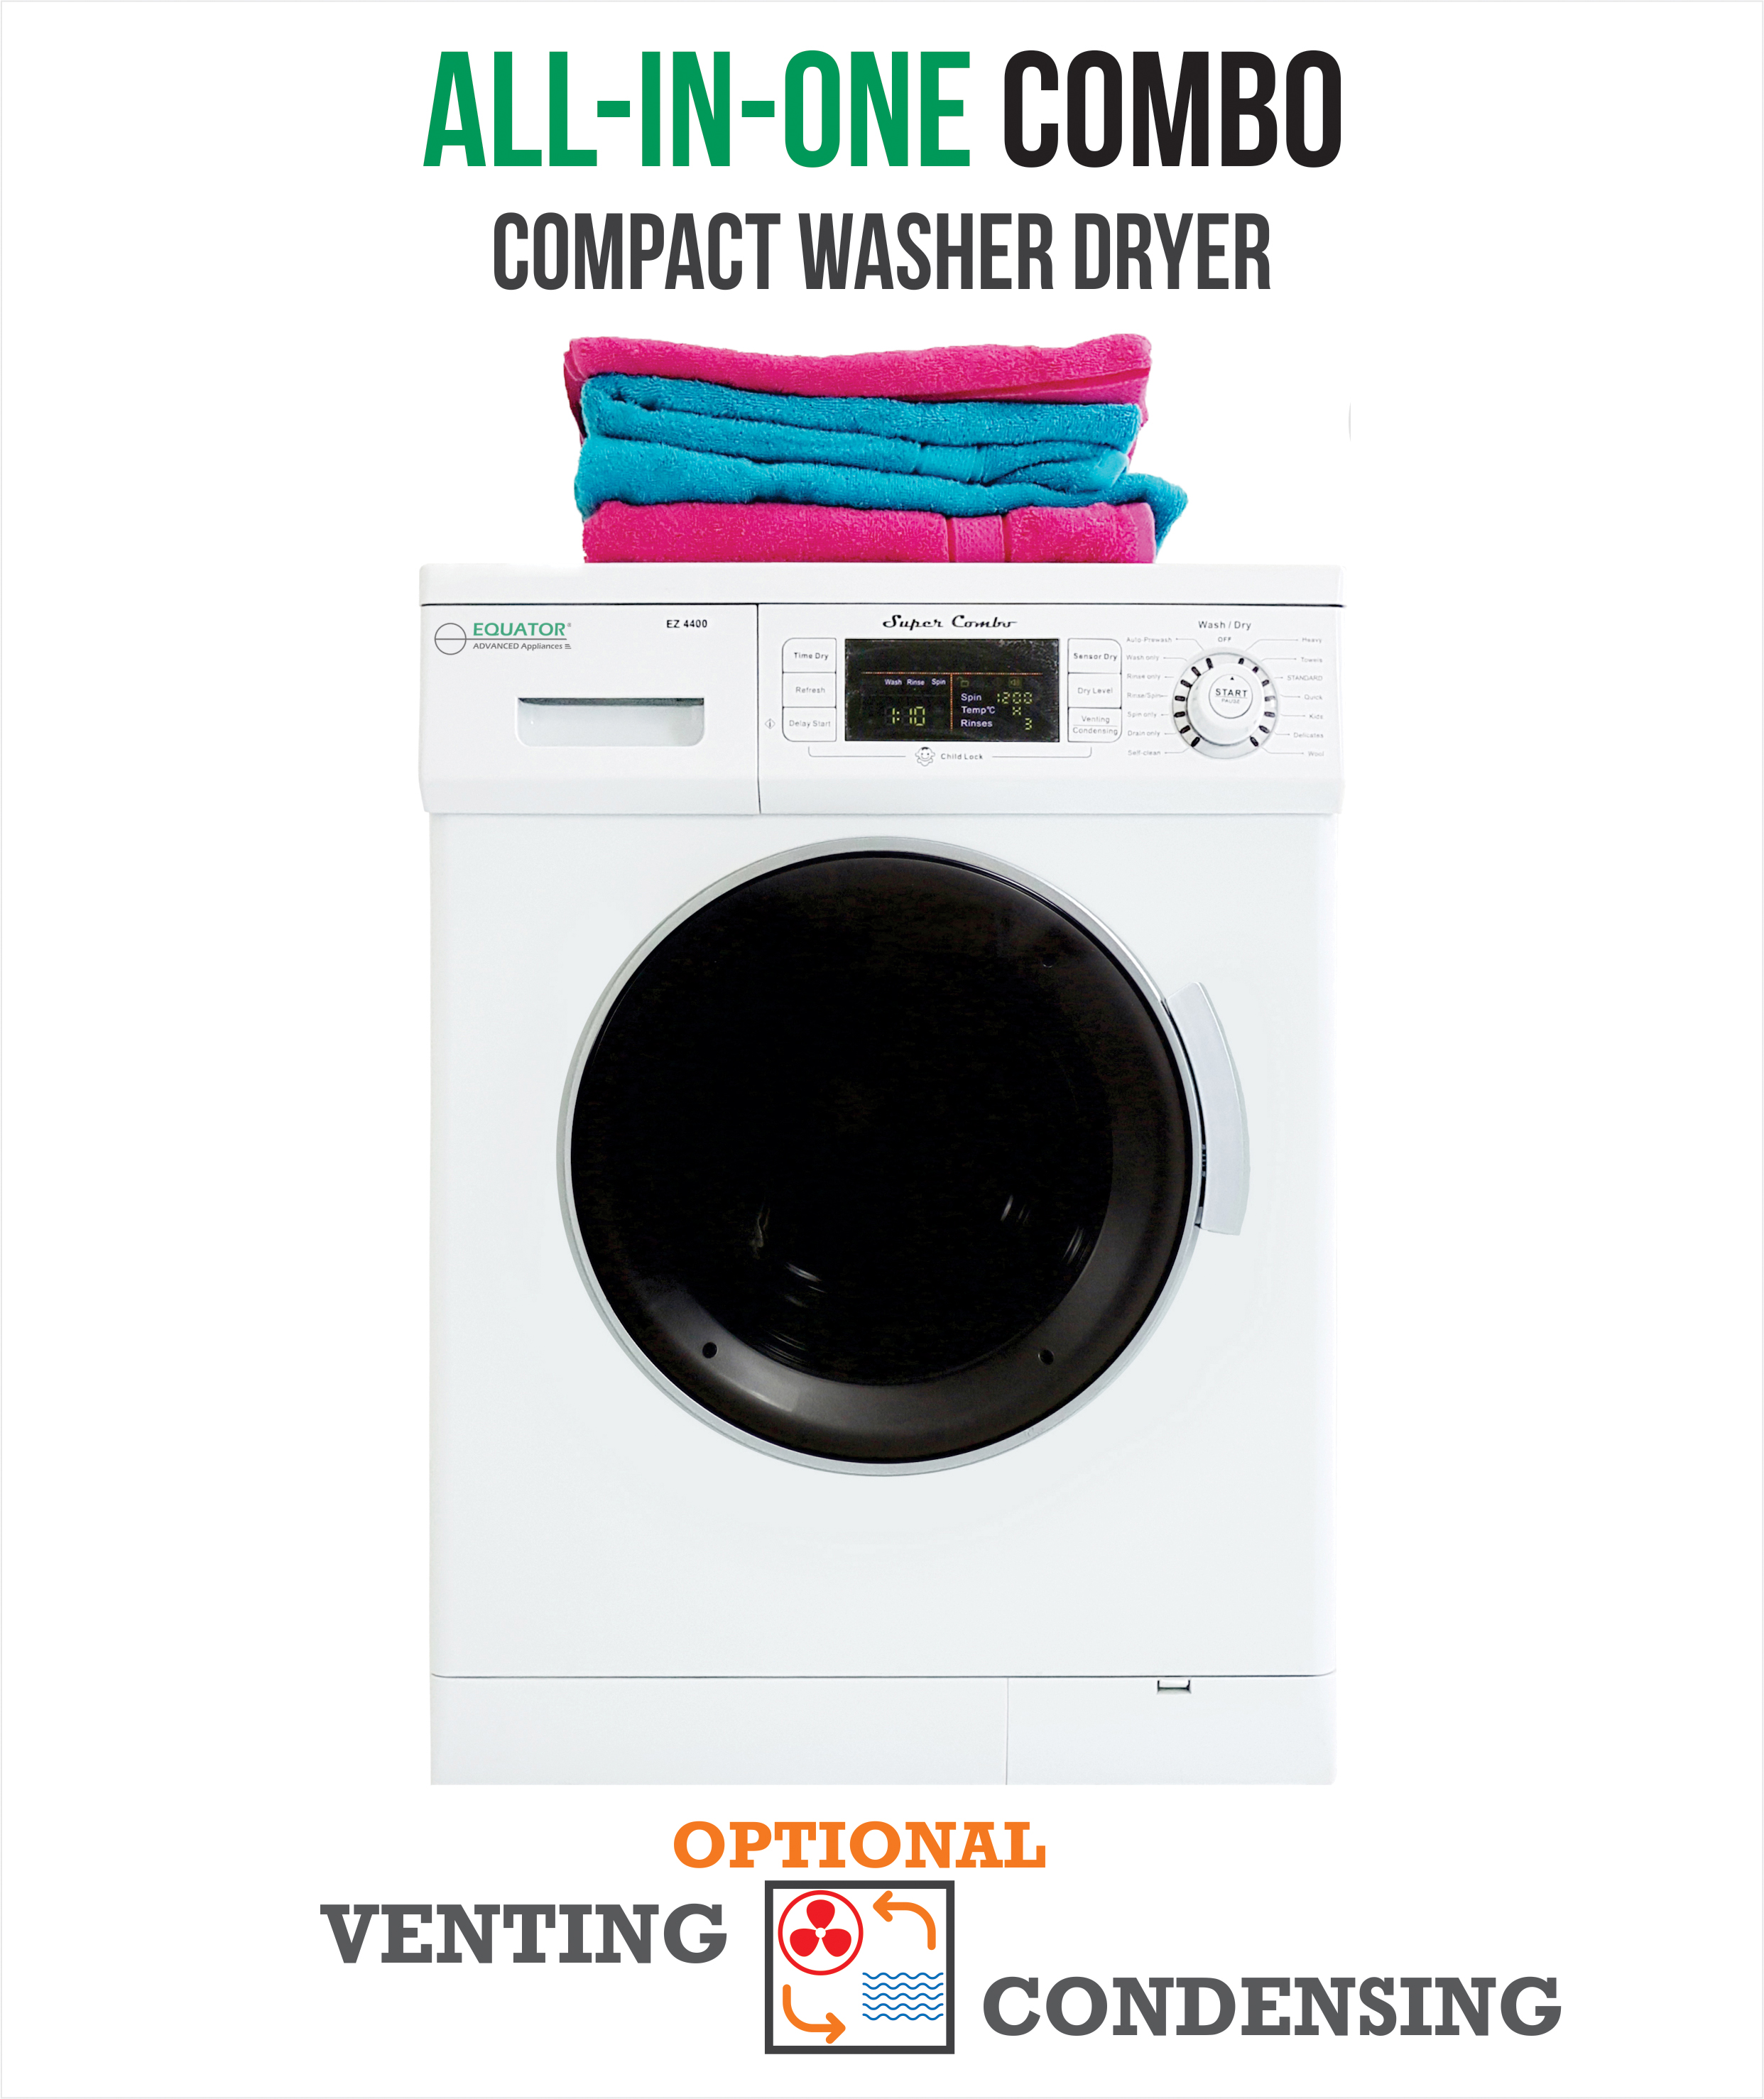 All-in-One 13 lb. 1200 RPM Compact Combo Washer Dryer with Optional Condensing/ Venting, Sensor Dry, Auto Water Level, White.